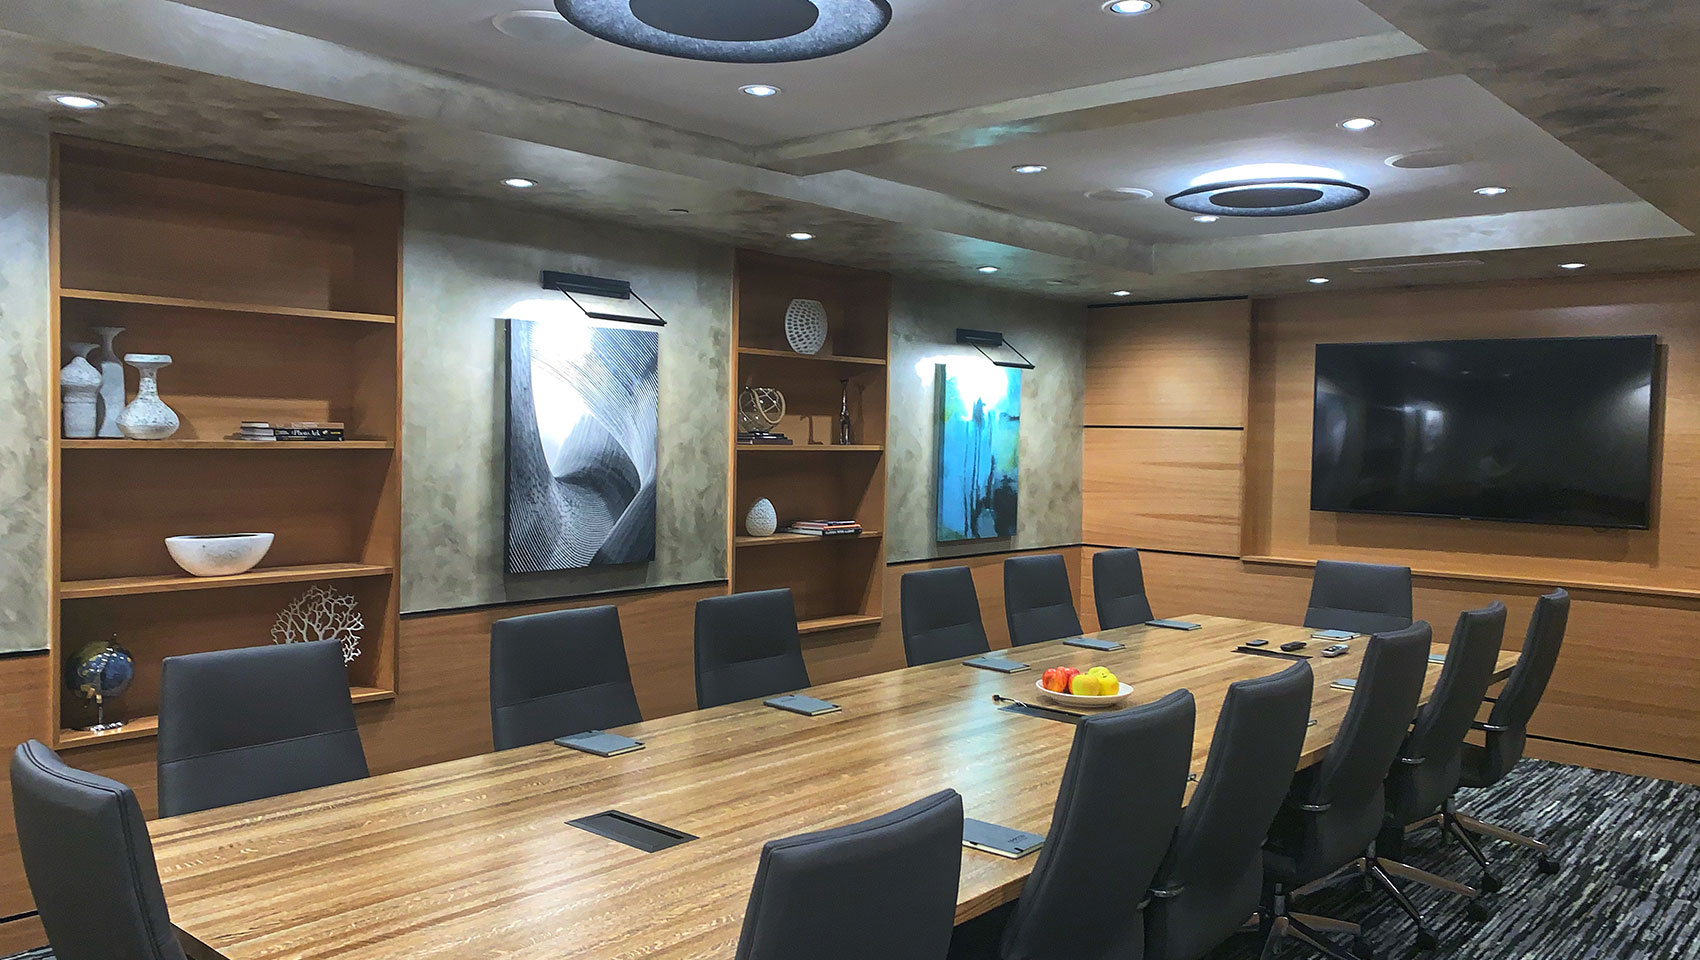 Ark Boardroom set up with conference style seating